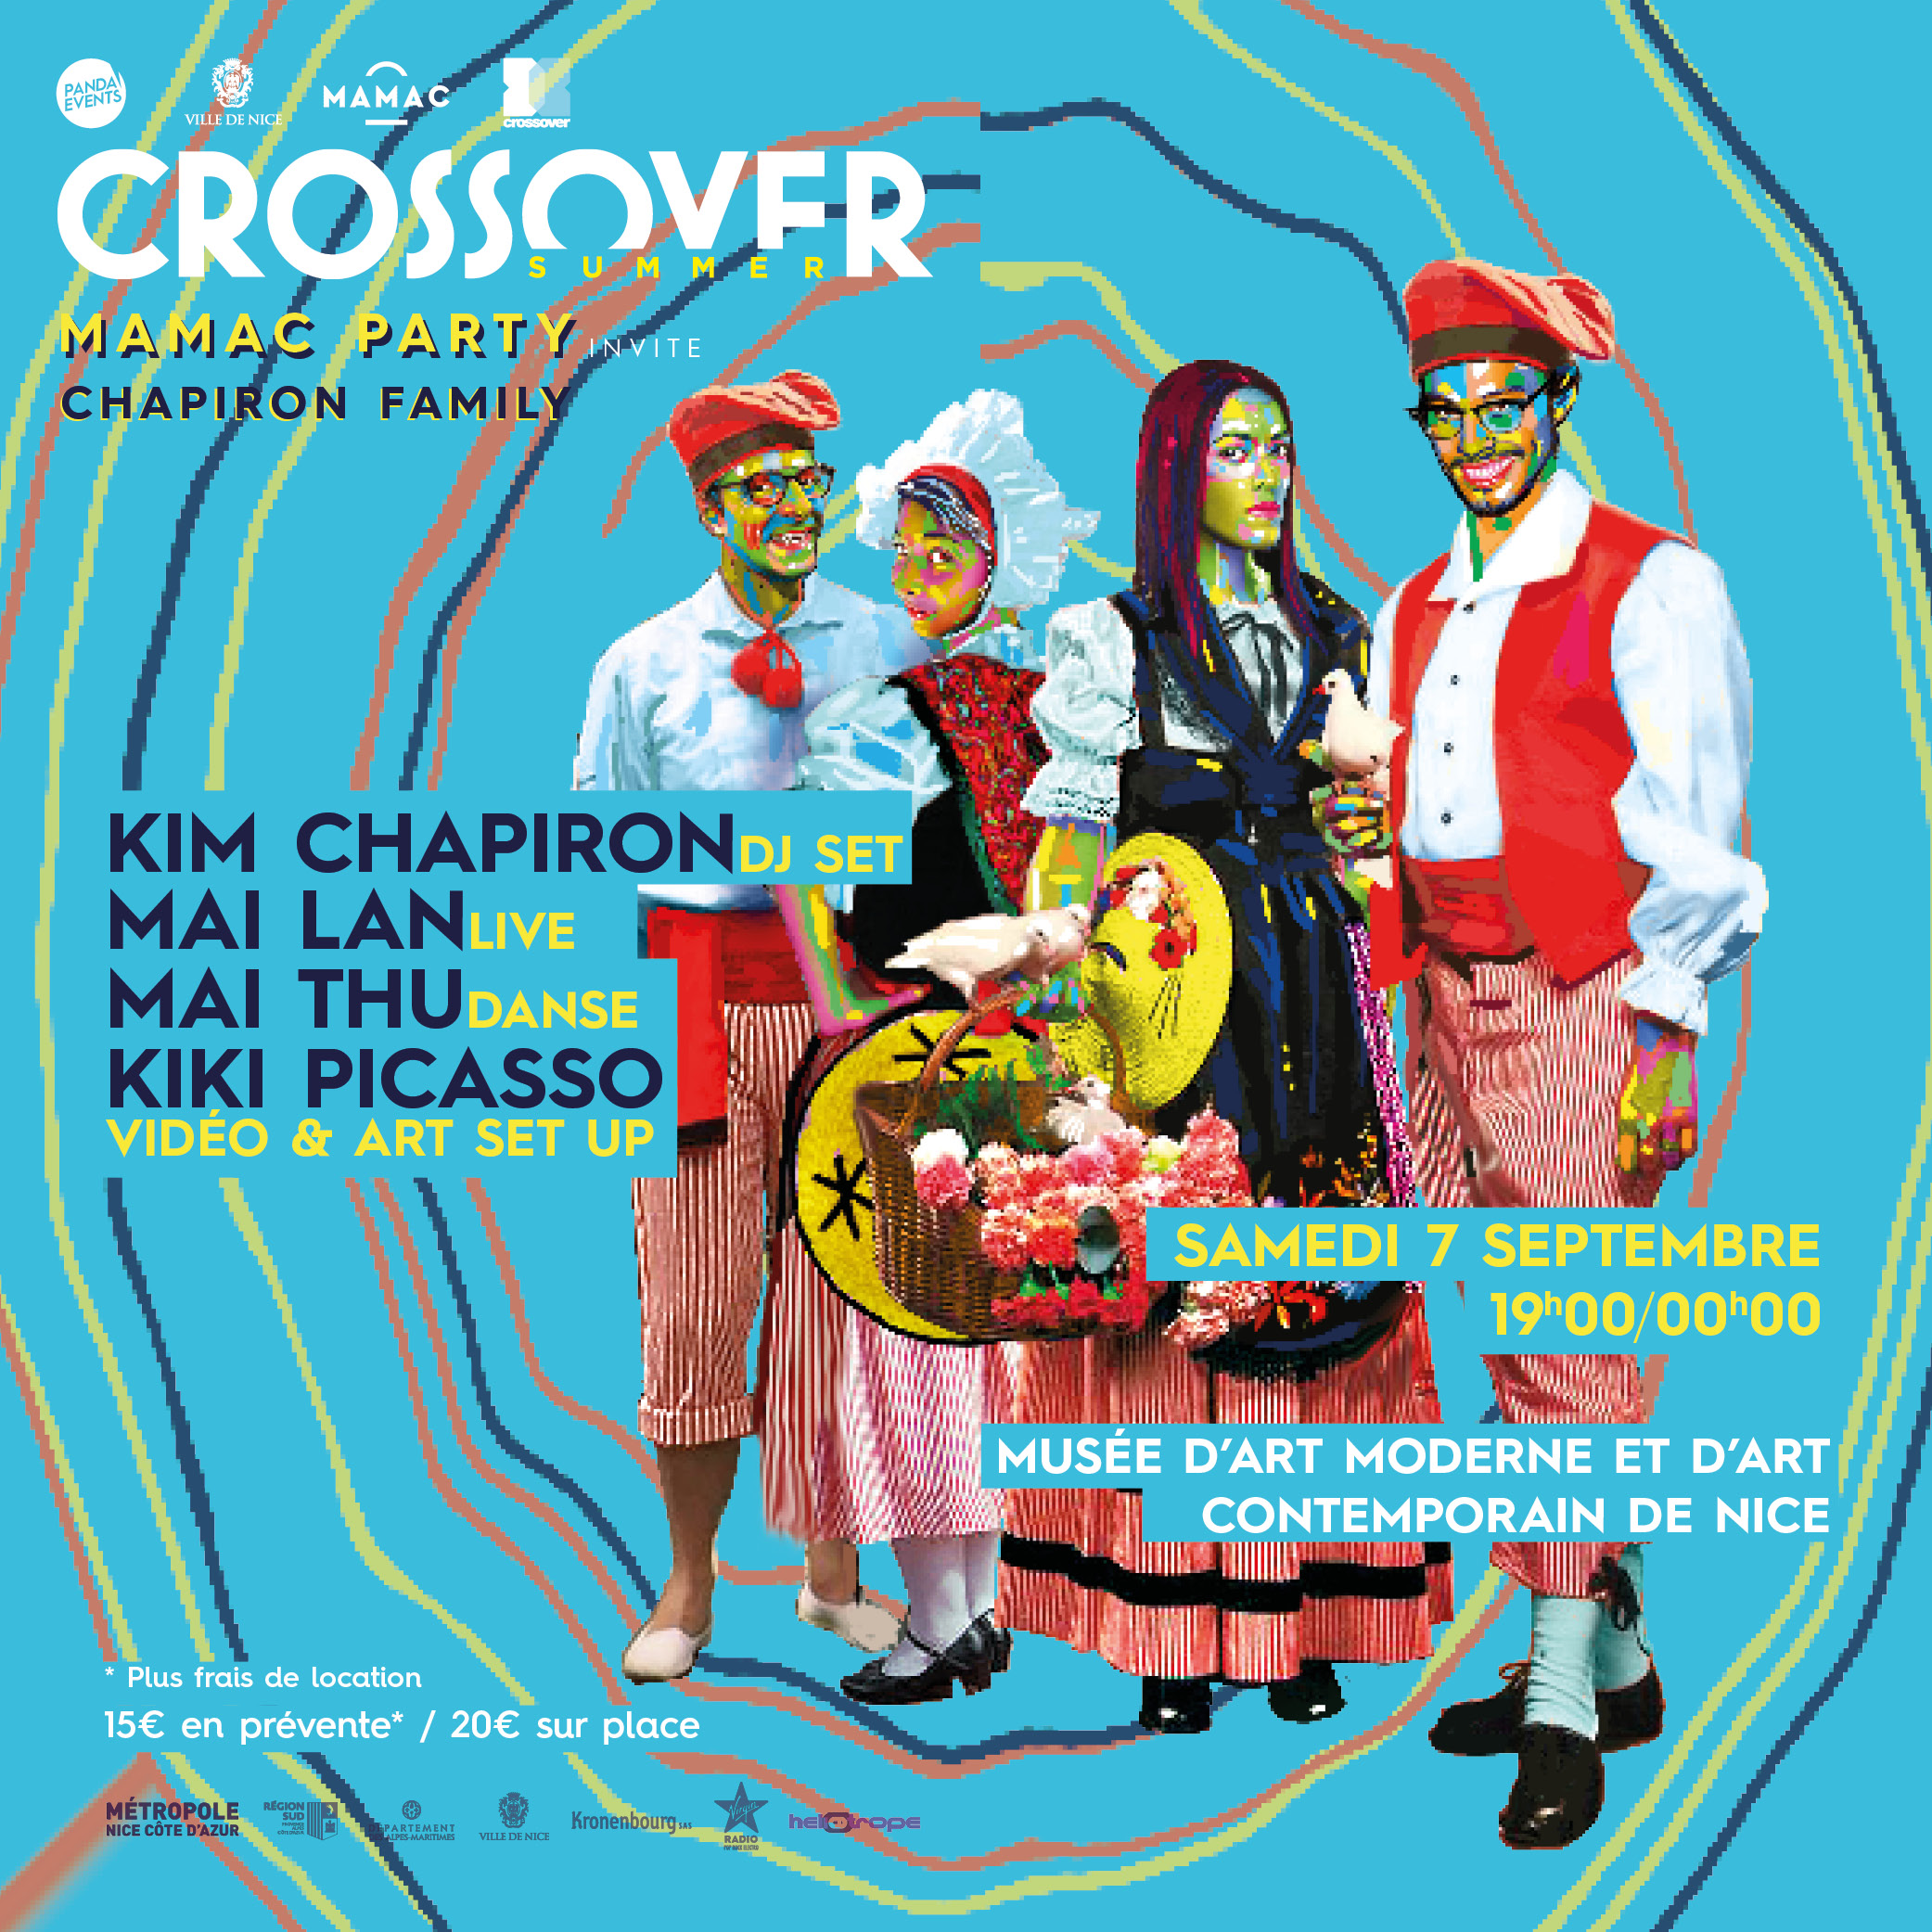 Crossover Summer MAMAC Party